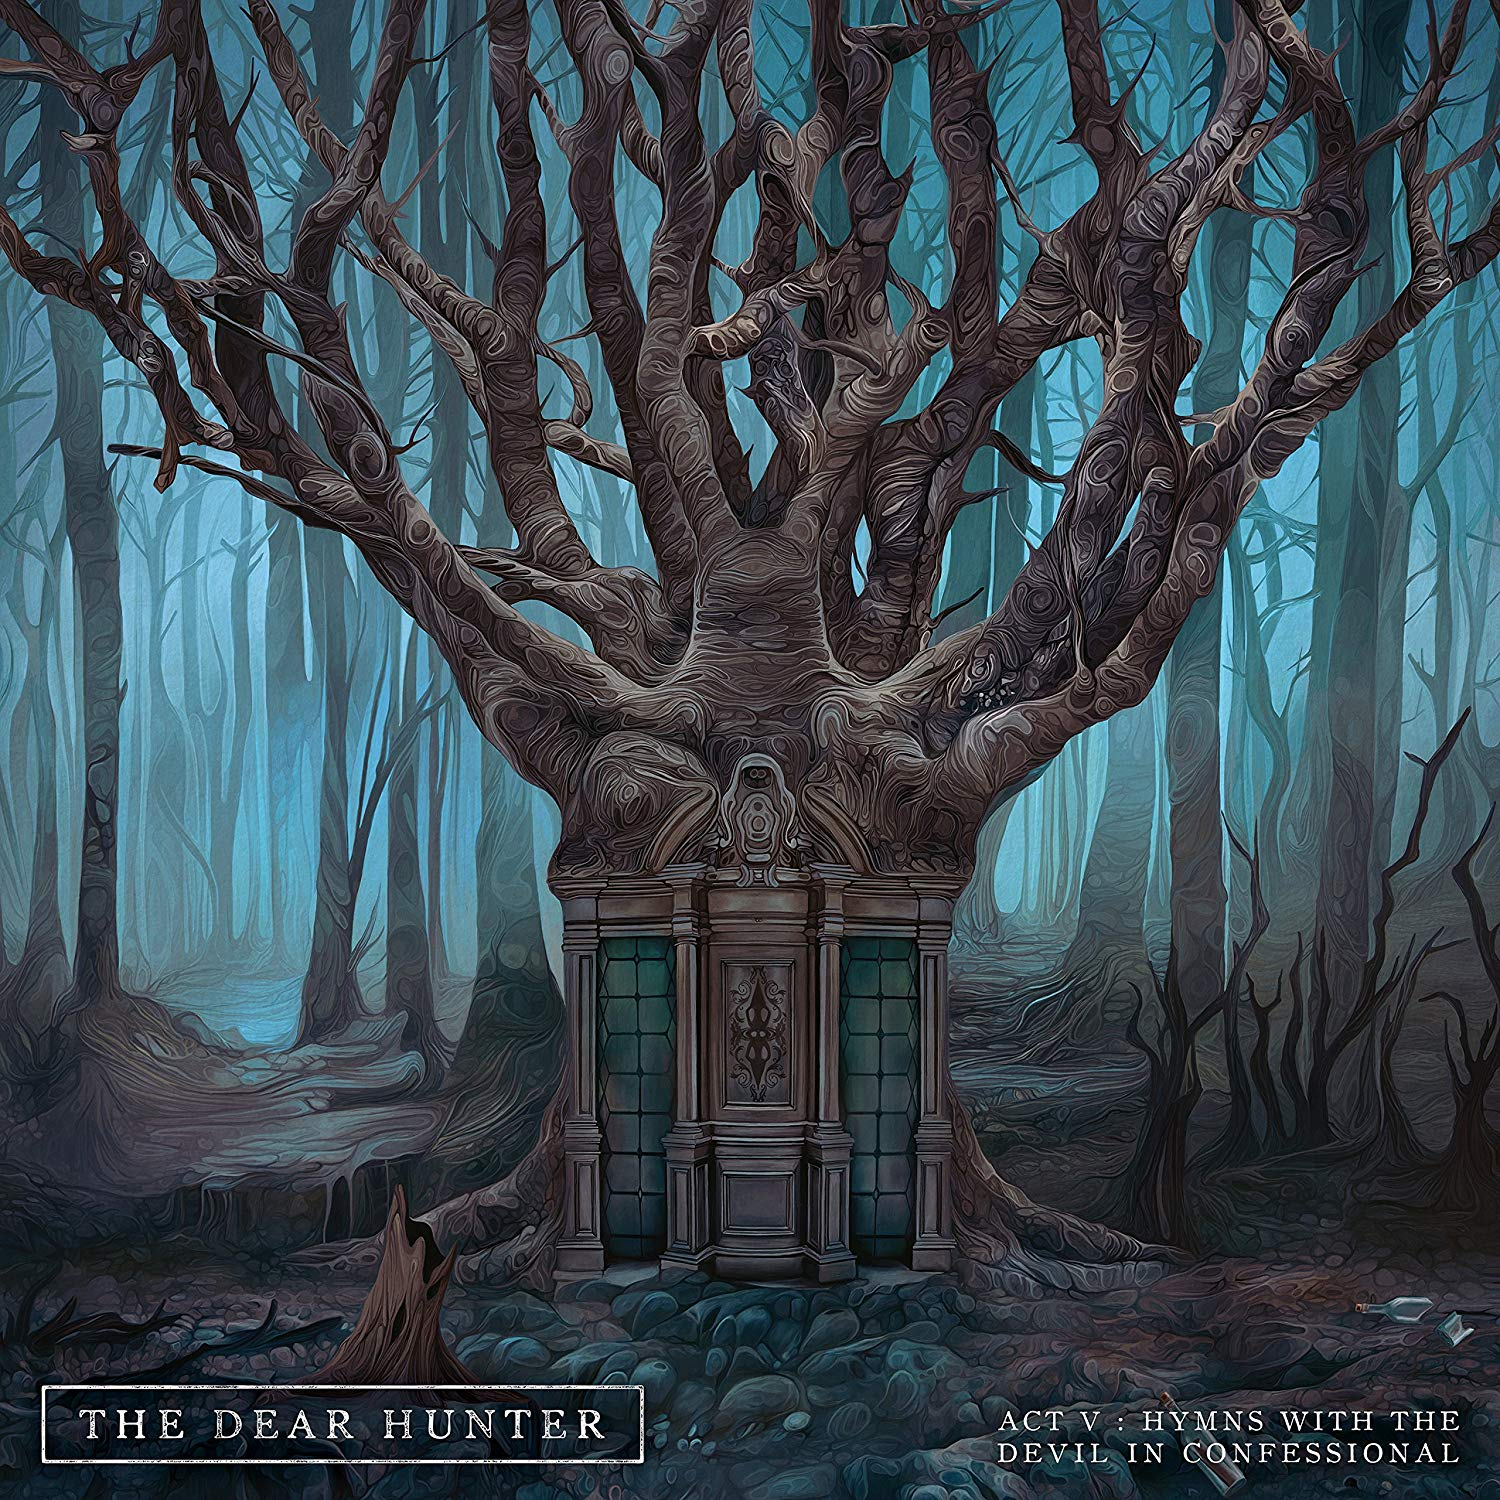 The Dear Hunter - Hymns with the Devil in Confessional